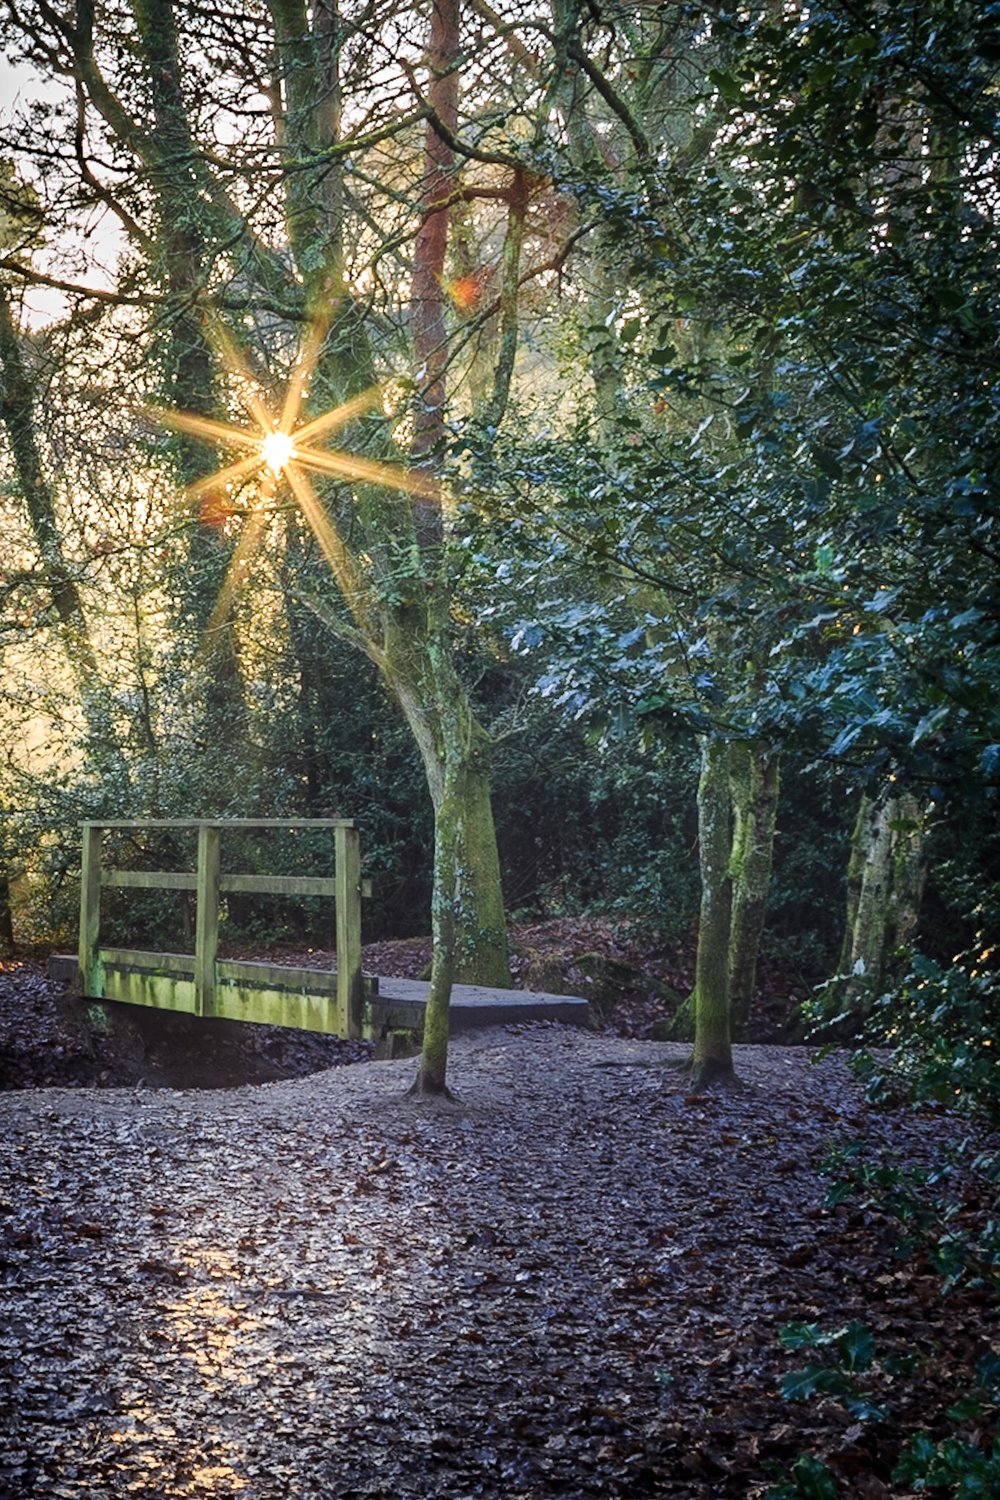 Footbridge in the woods illuminated by the sunshine